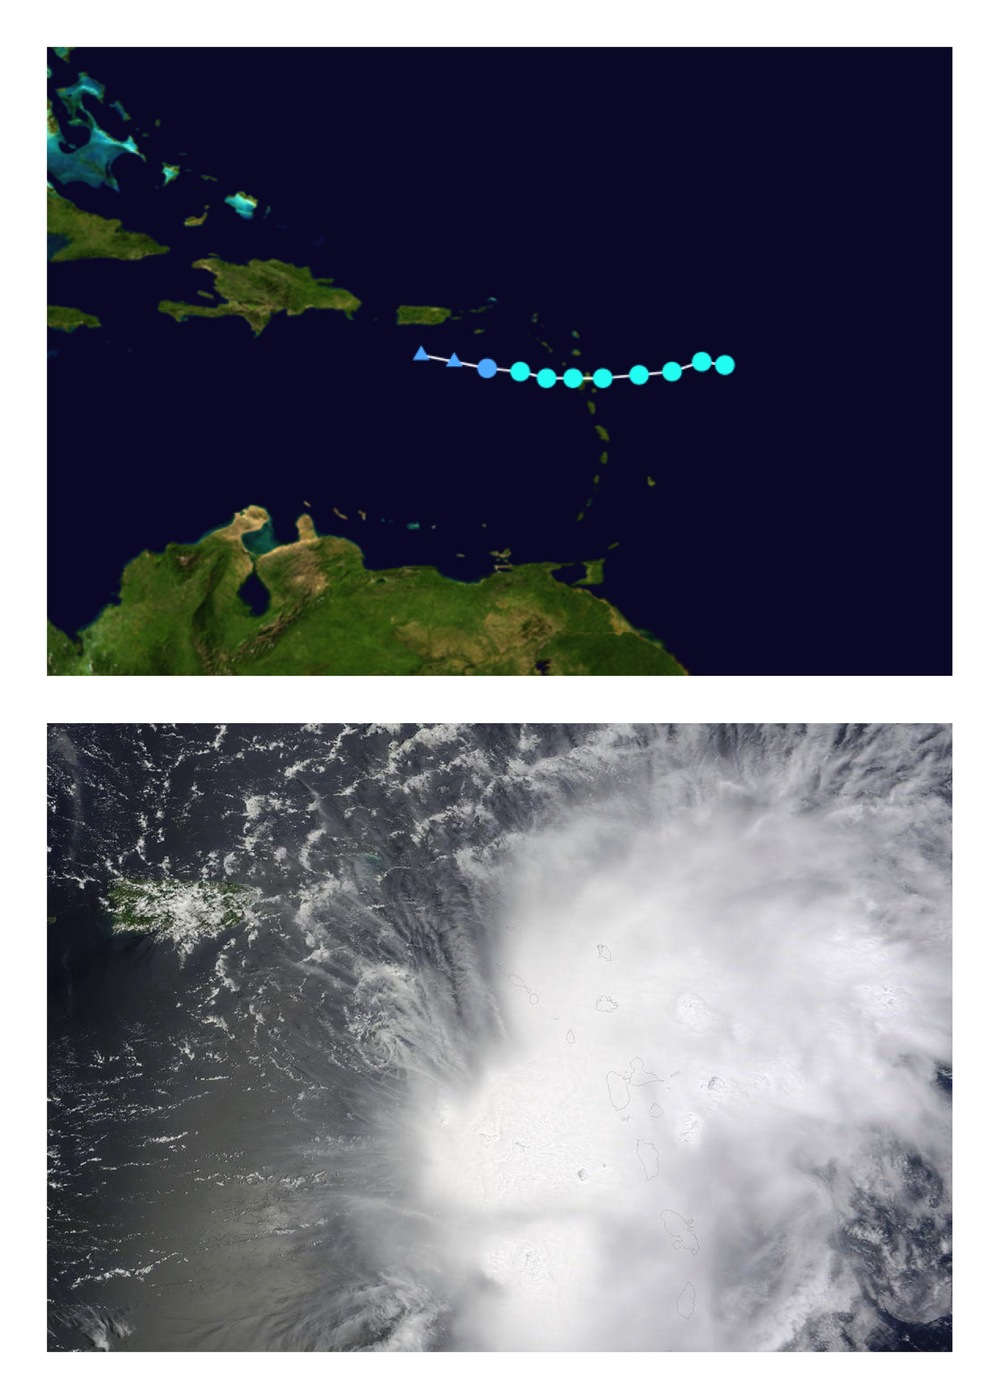 Erika back in 2009 dissipated in the same where 2015's Erika is located.